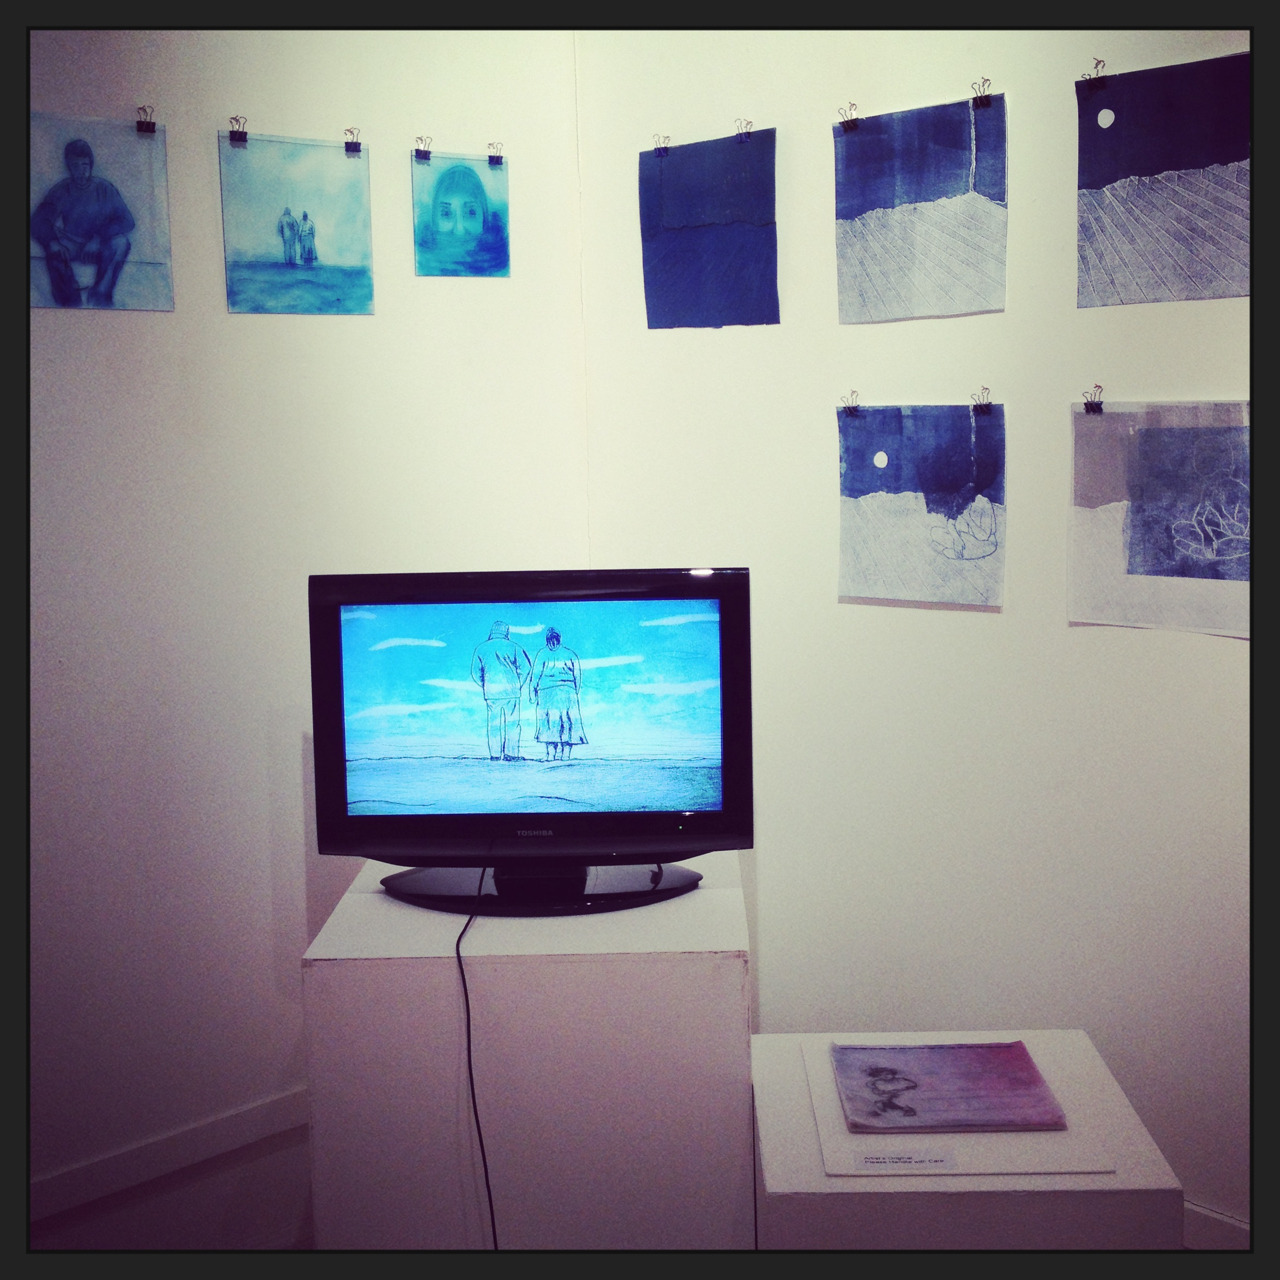 My print/animations at Thelma Hulbert Gallery Jan-March 2013 w/ @cathcartwright